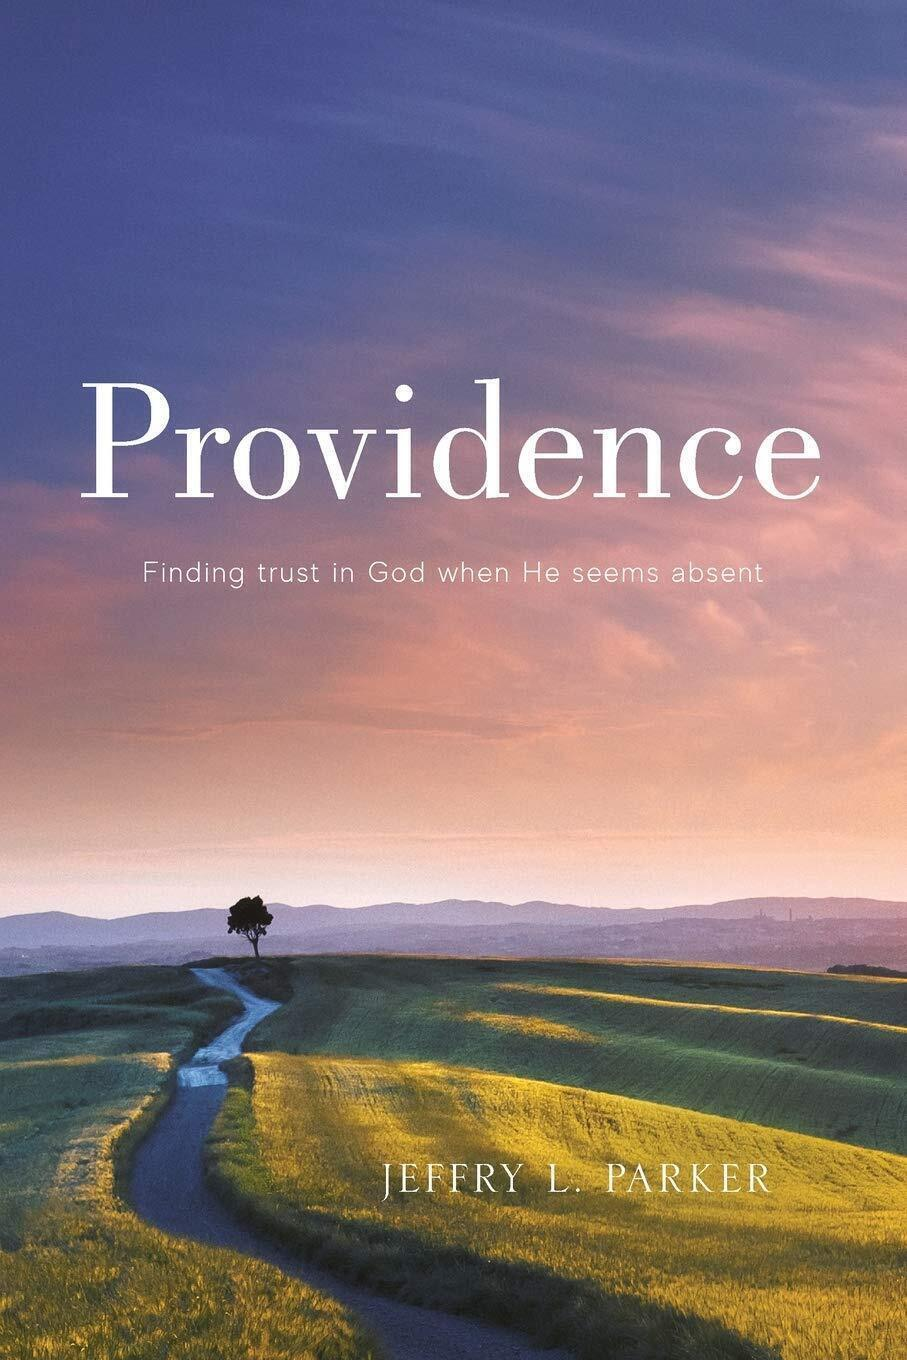 Vide Press, The Book Publishing Division of The Christian Post, Announces The Release of Two Compelling New Books.